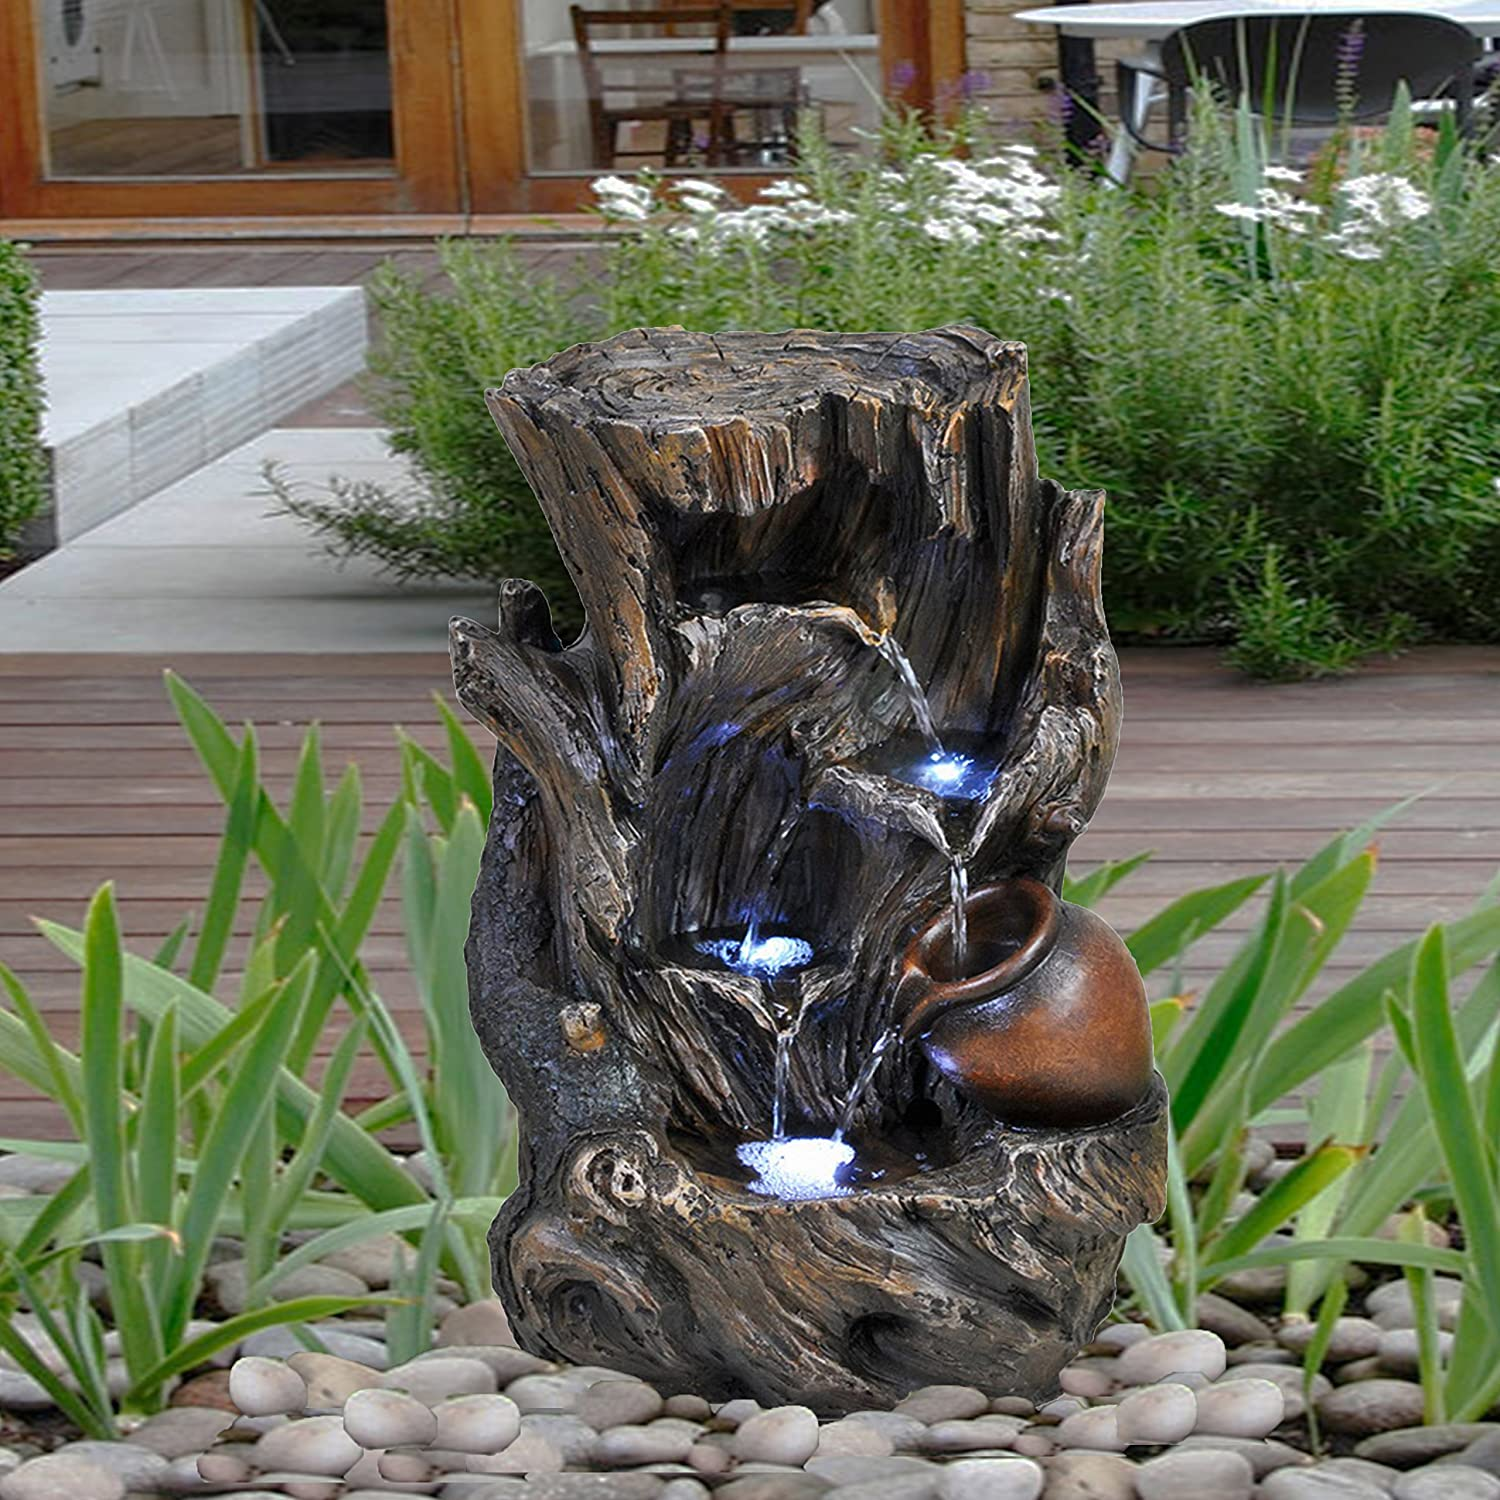 Tree Log Fountain GEEZY Garden Water Feature LED Fountain Indoor Outdoor Cascading Freestanding Polyresin Garden Statue Lights & Water Decoration (Tree Log Fountain)